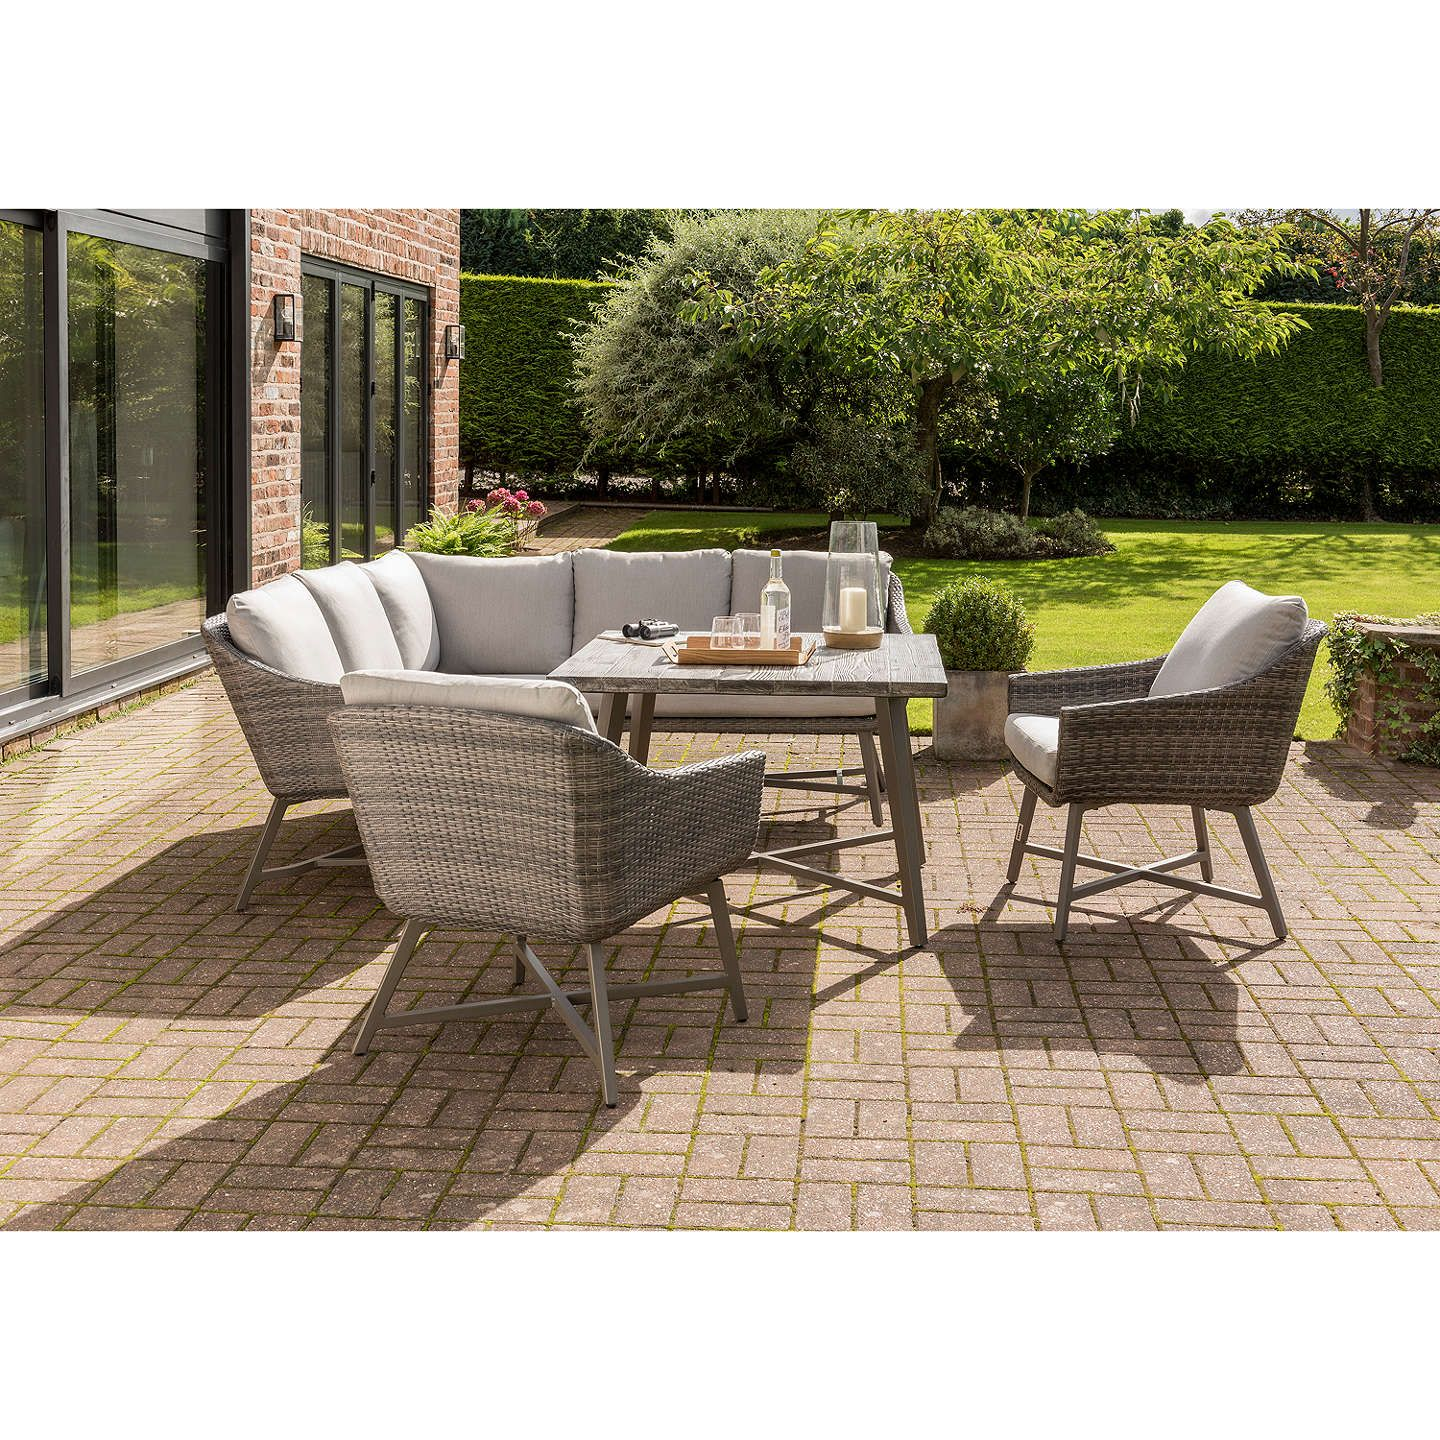 KETTLER LaMode Garden Lounging Corner Table and Chairs Set ...